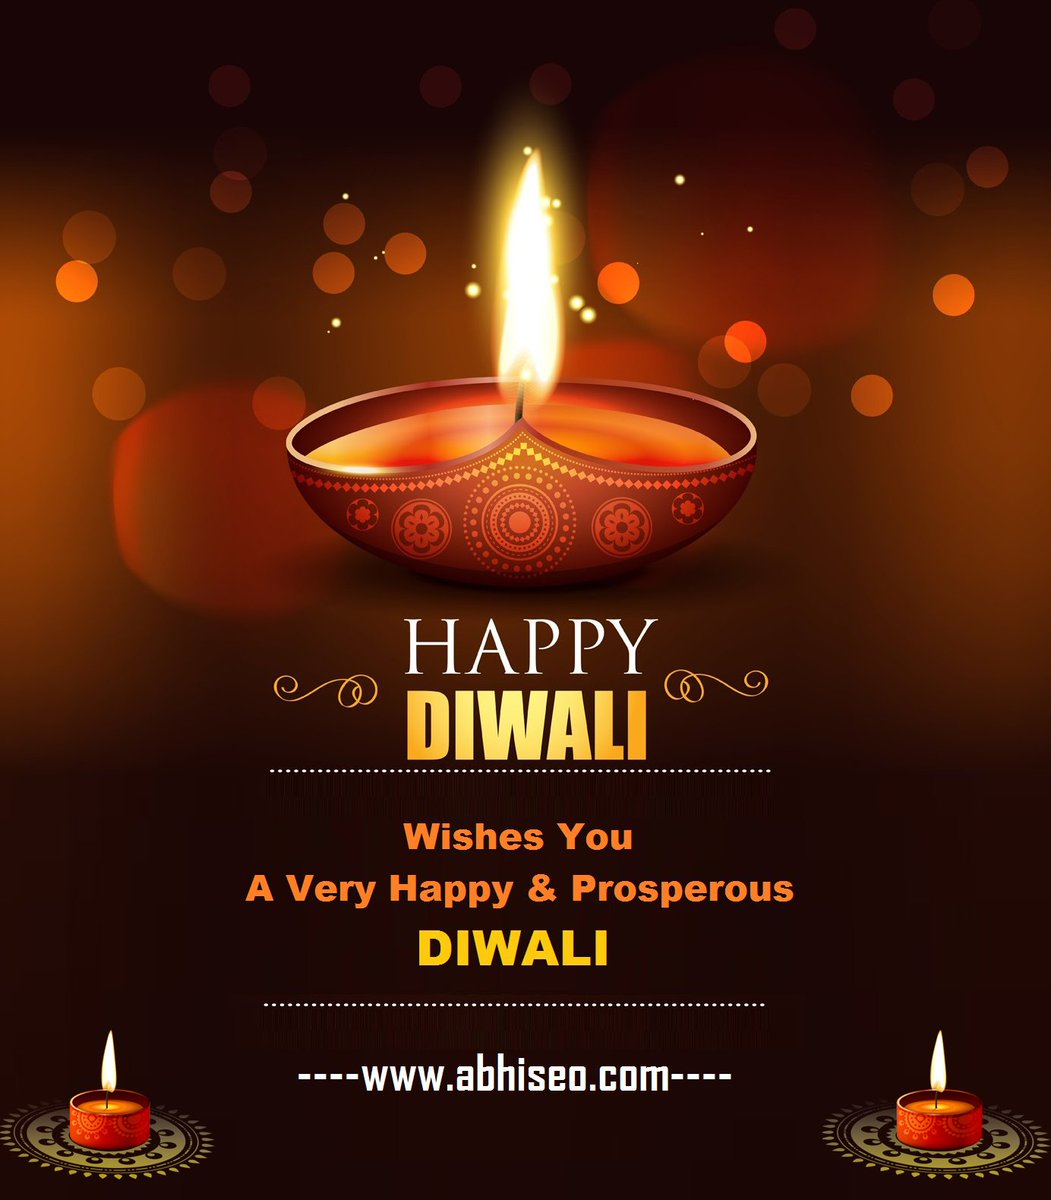 Happy Diwali all of you. #Diwali! Stay safe and #green this Diwali and keep our cities pollution free! #HappyDiwali #nocrackers #Abhiseo<br>http://pic.twitter.com/iHo3IT2dXN